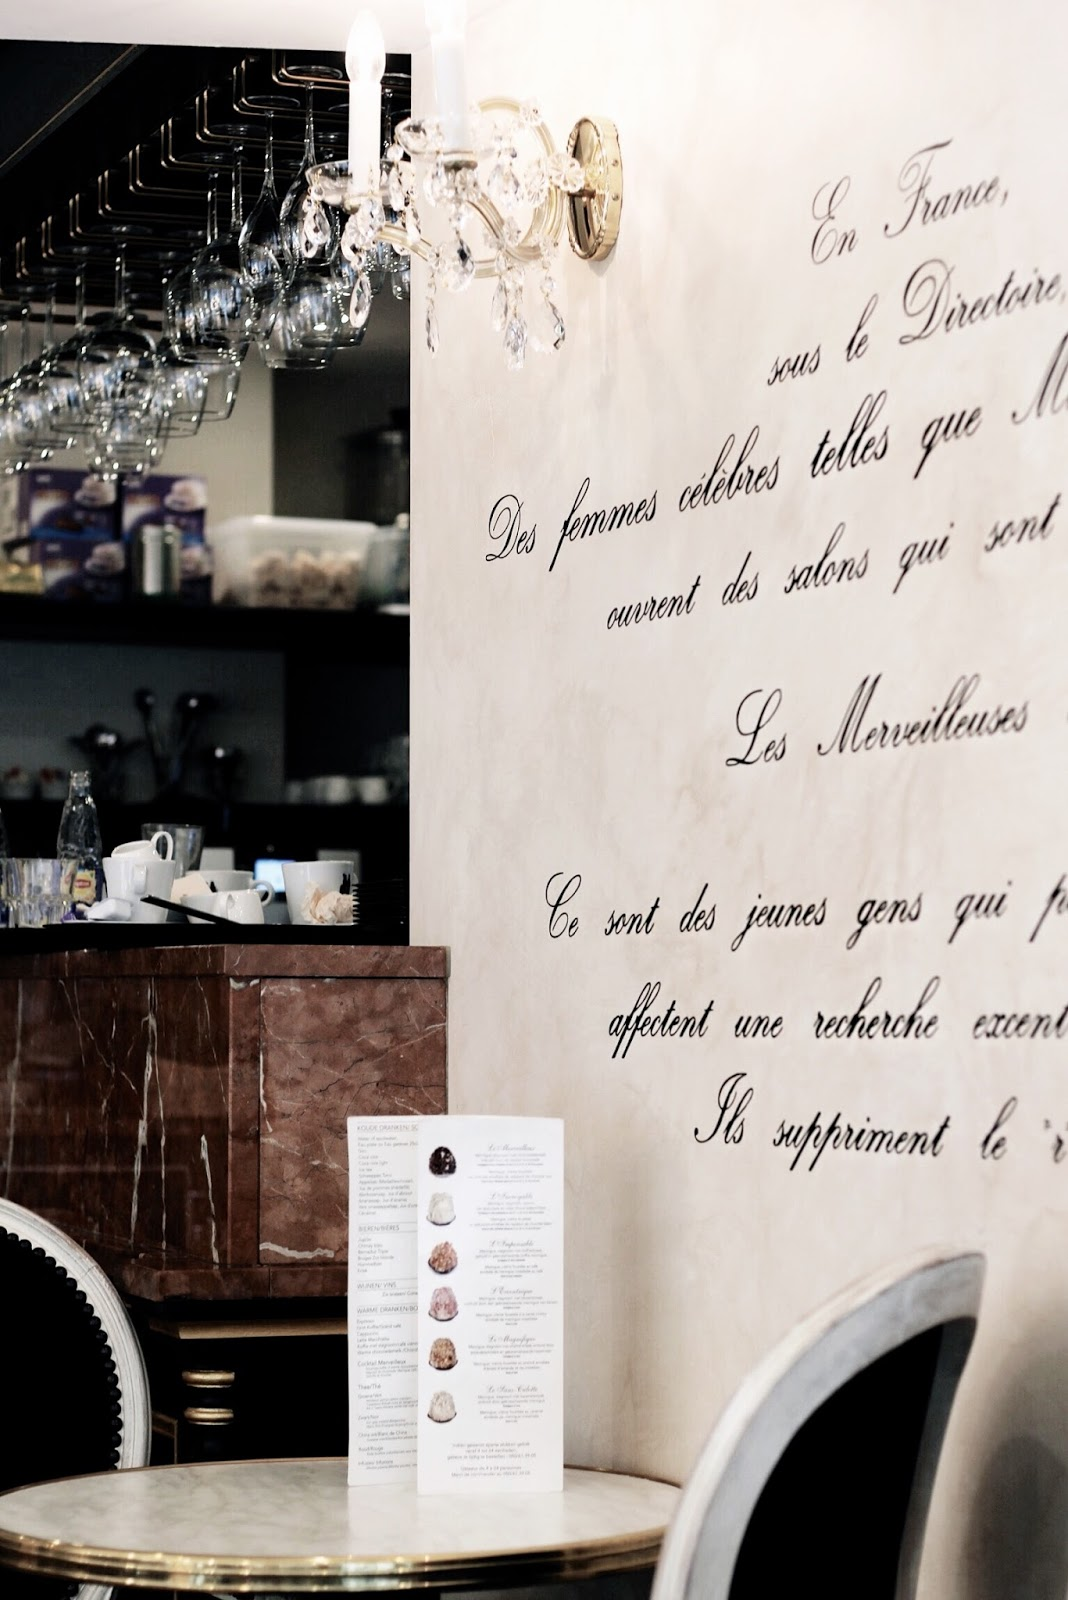 Italic font writing on cafe restaurant wall